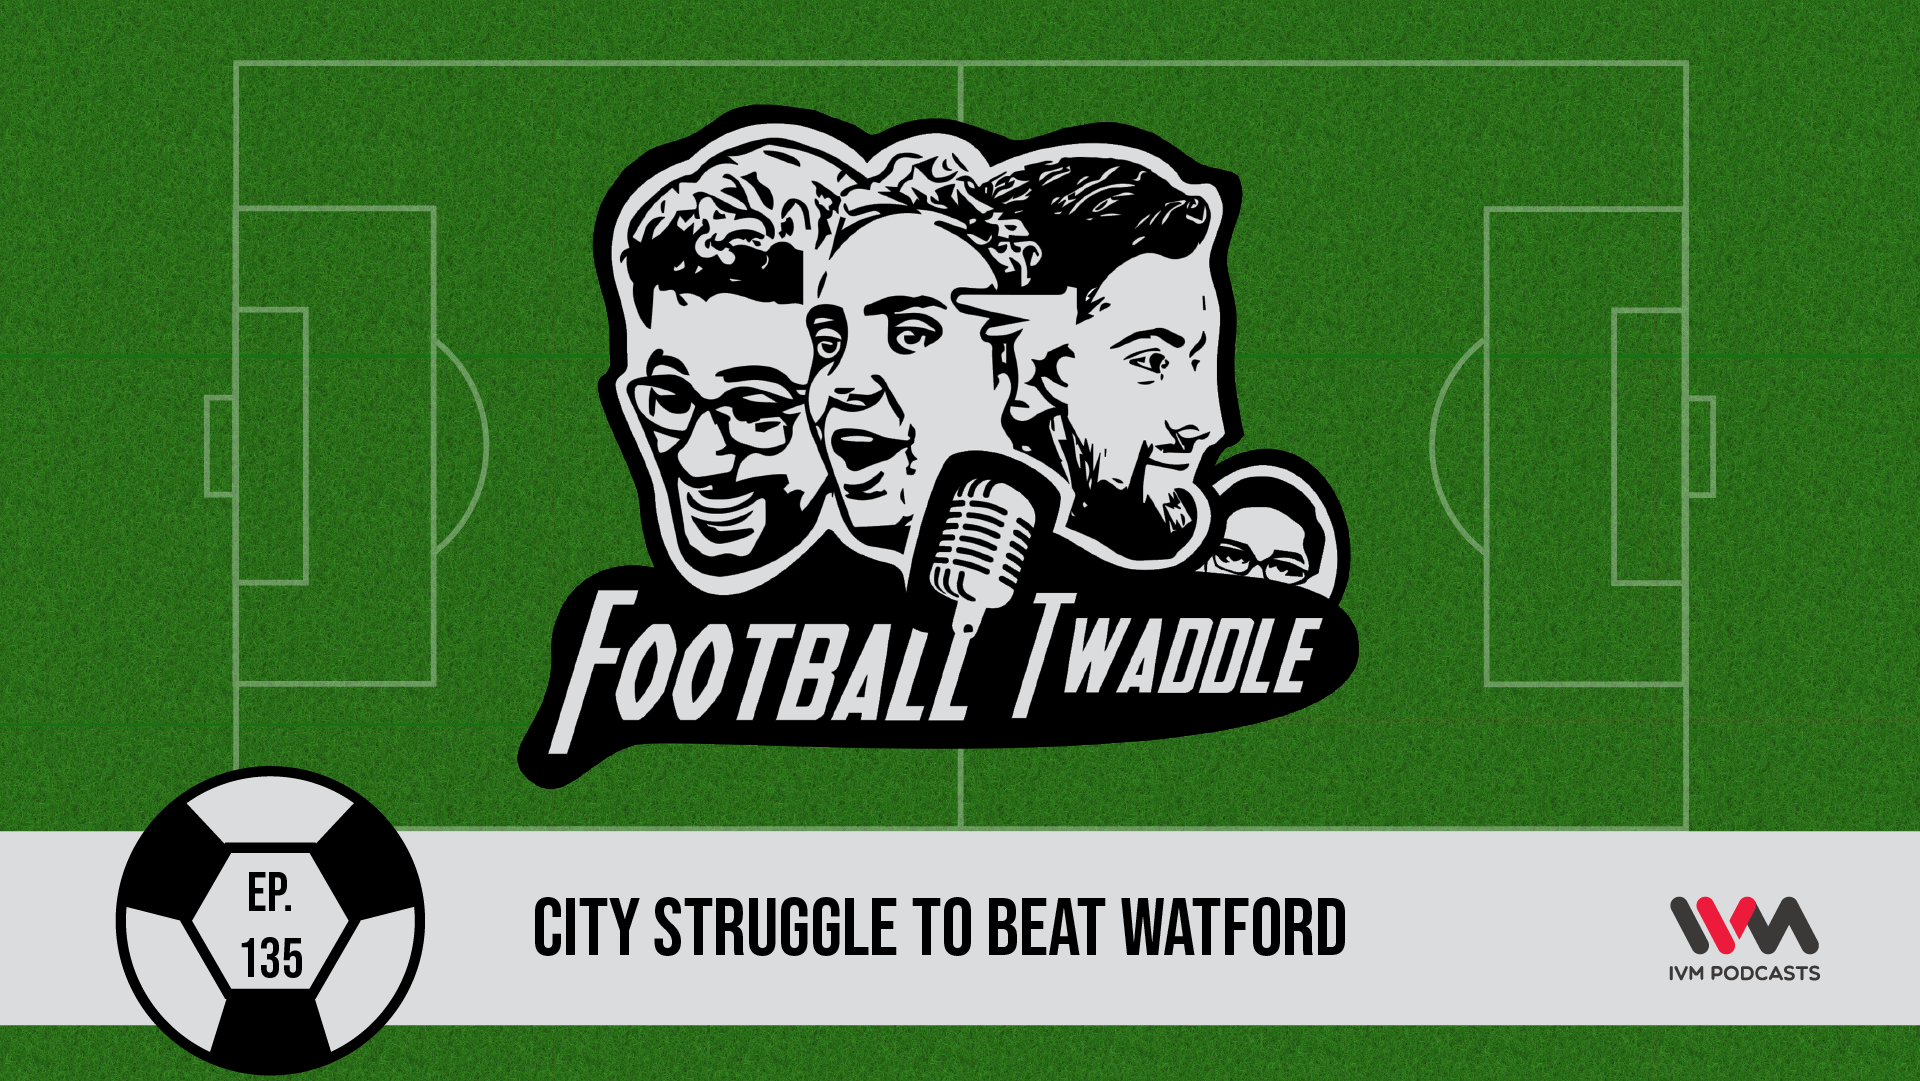 FootballTwaddleEpisode135.png